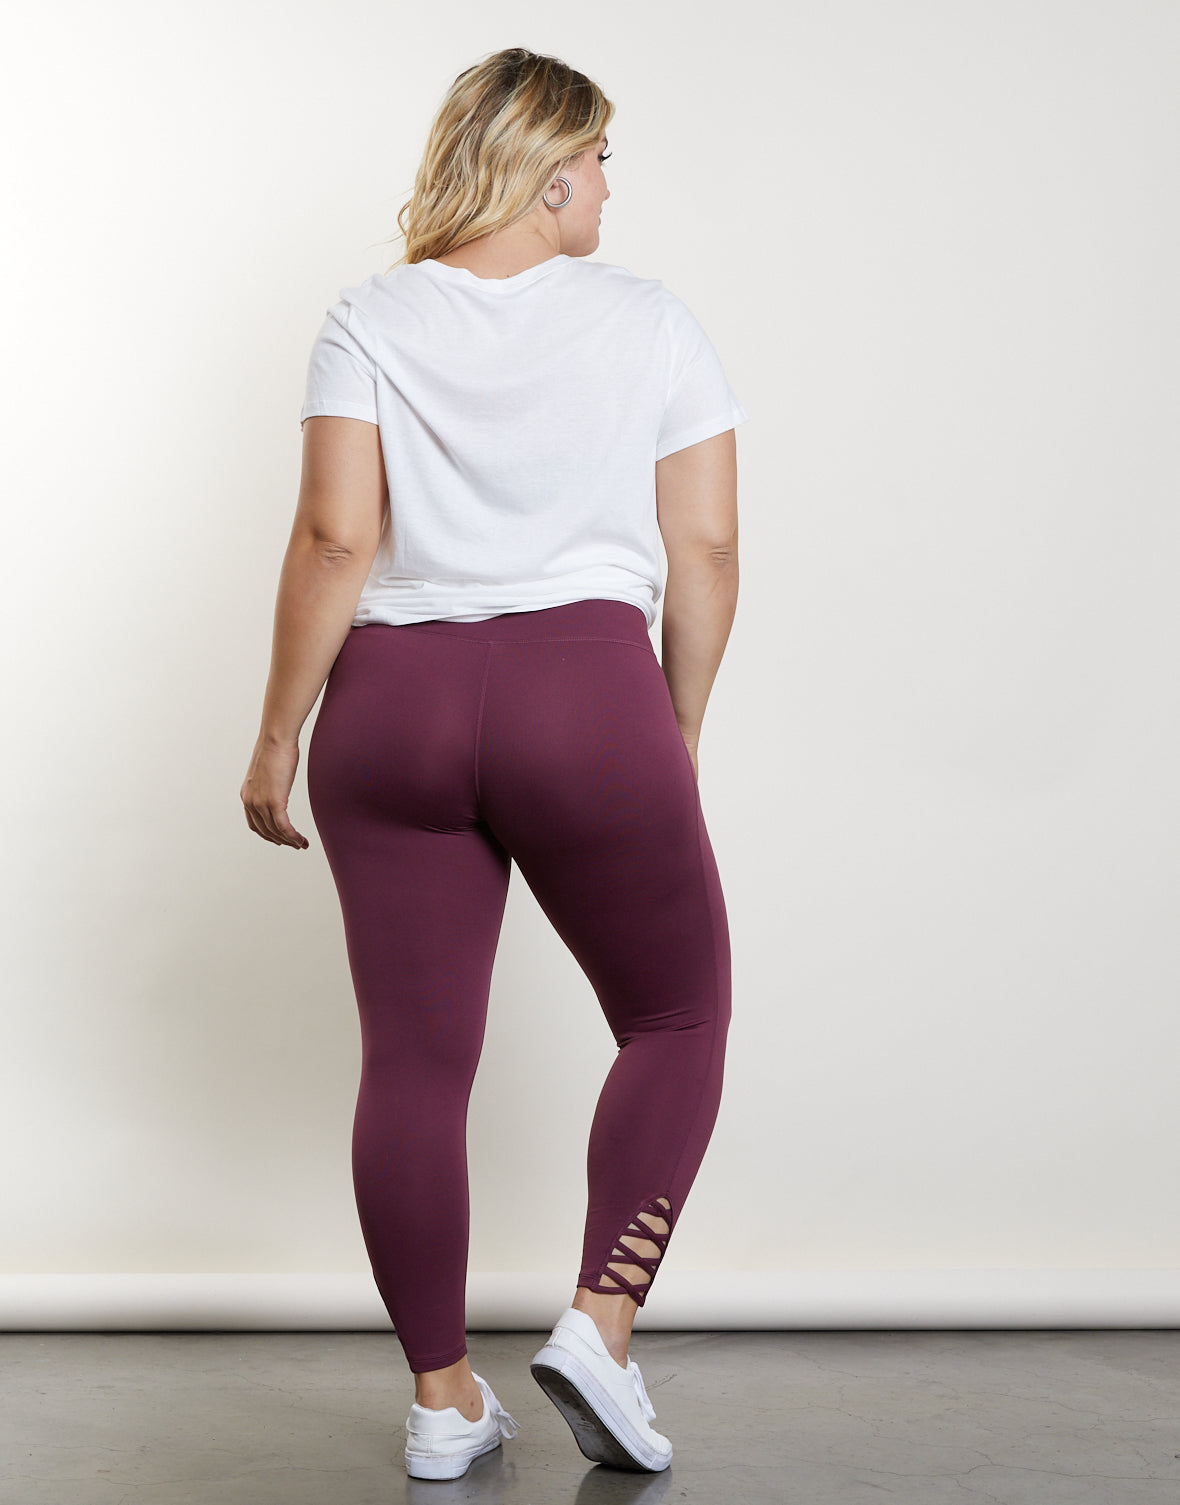 Plus Size In The Zone Leggings